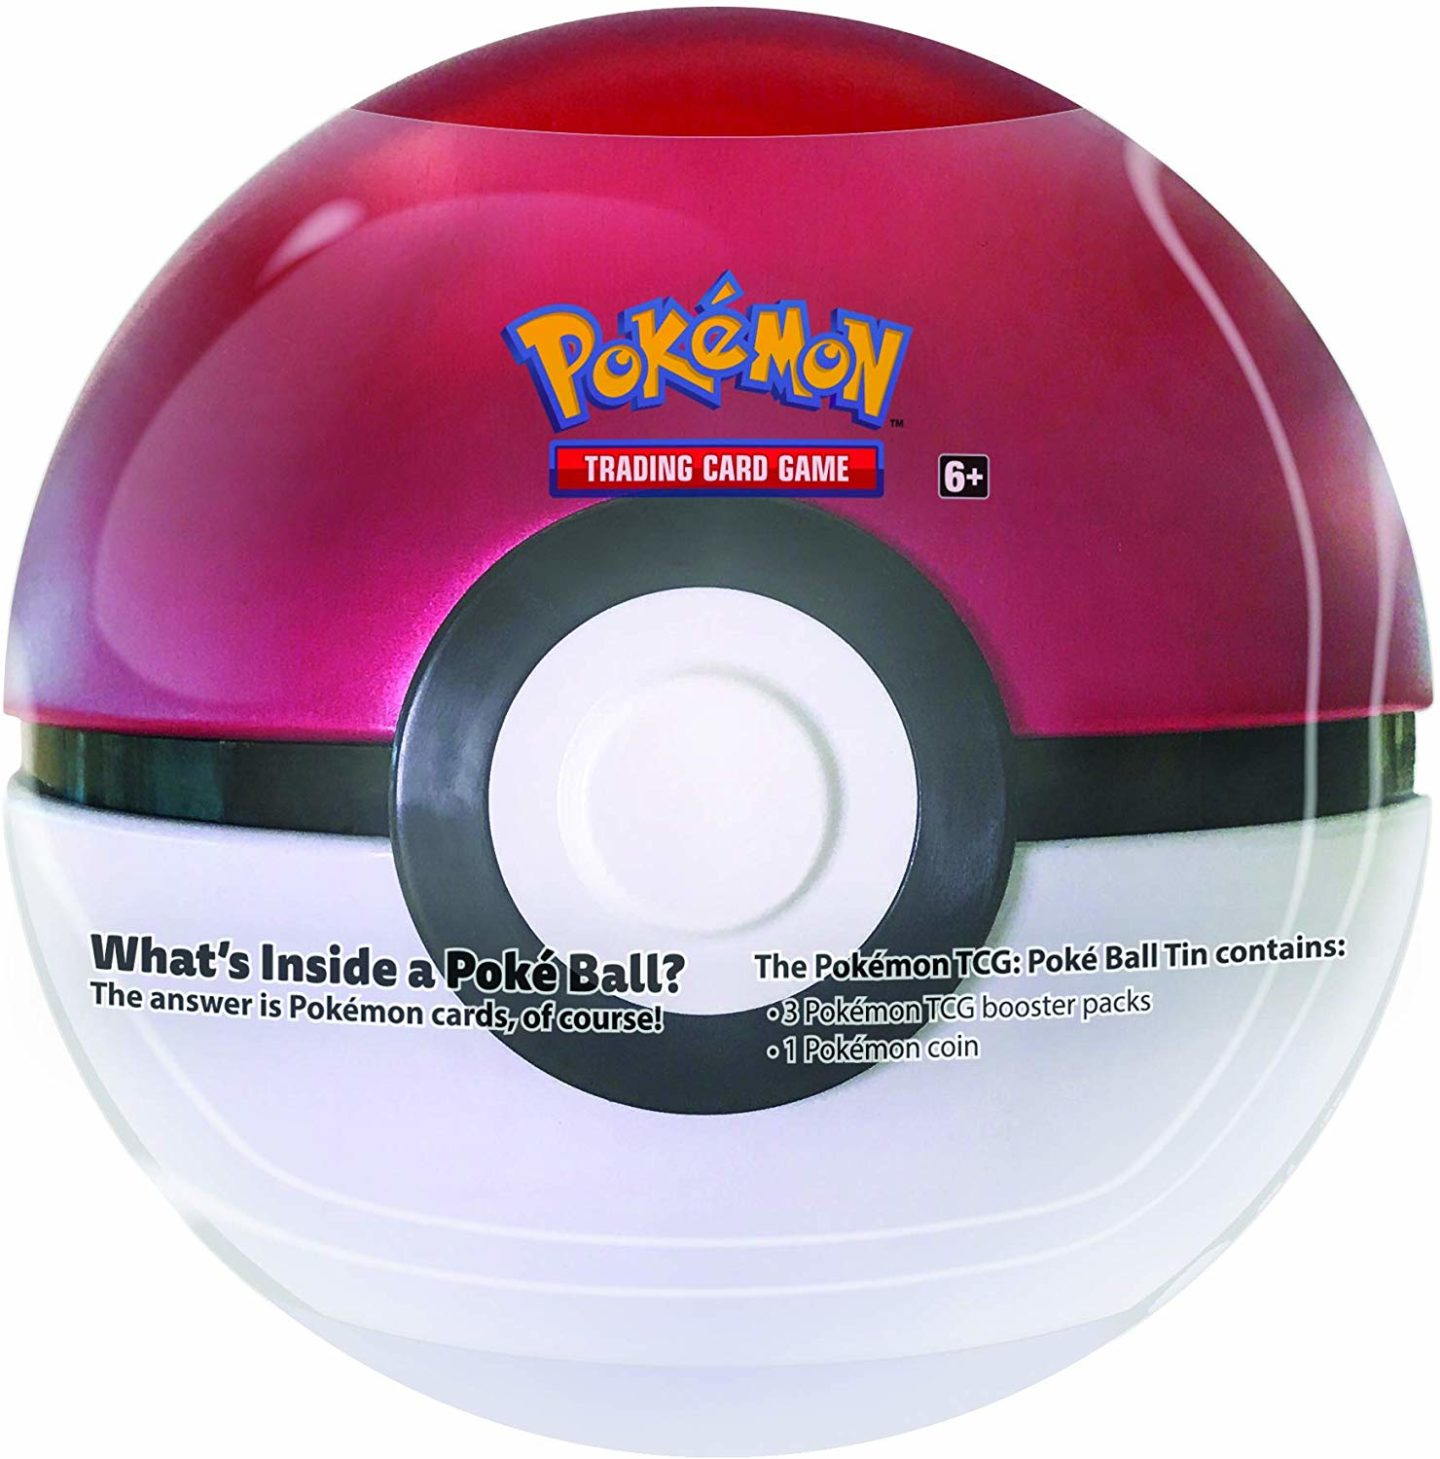 10 Pokemon gifts for kids you can buy on Amazon. Poke ball tin.